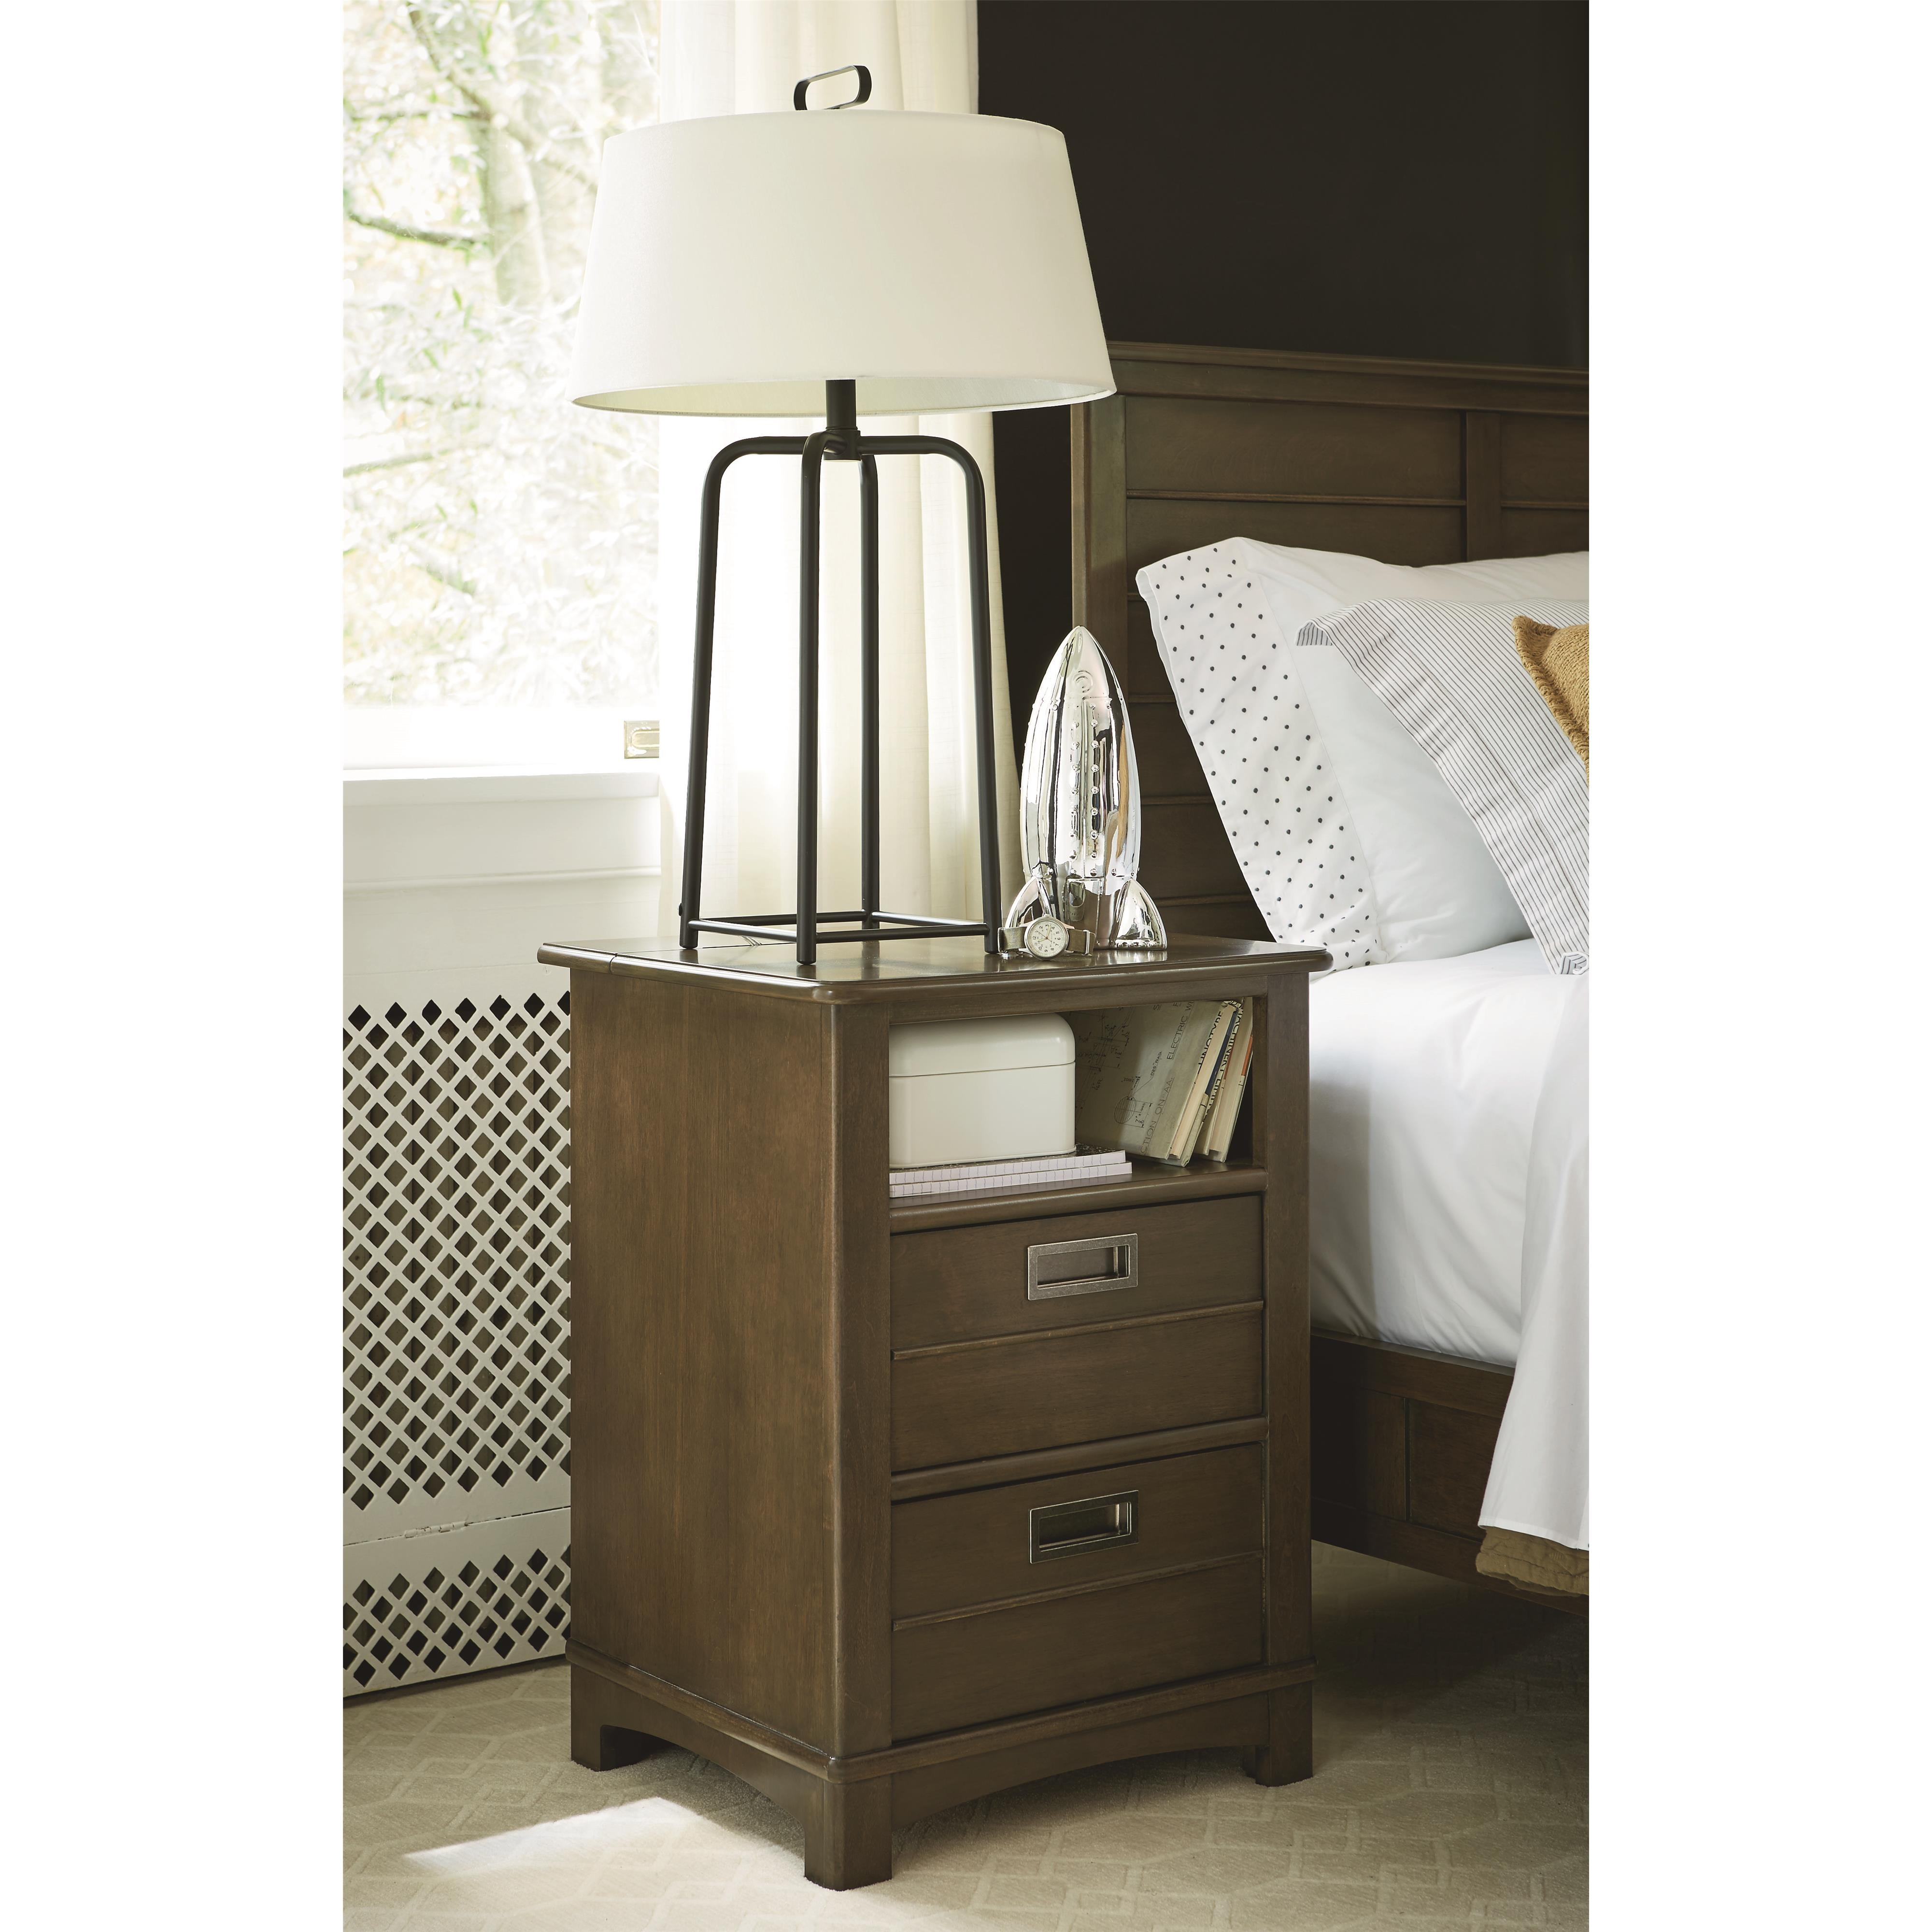 Smartstuff Varsity Nightstand With Charging Station